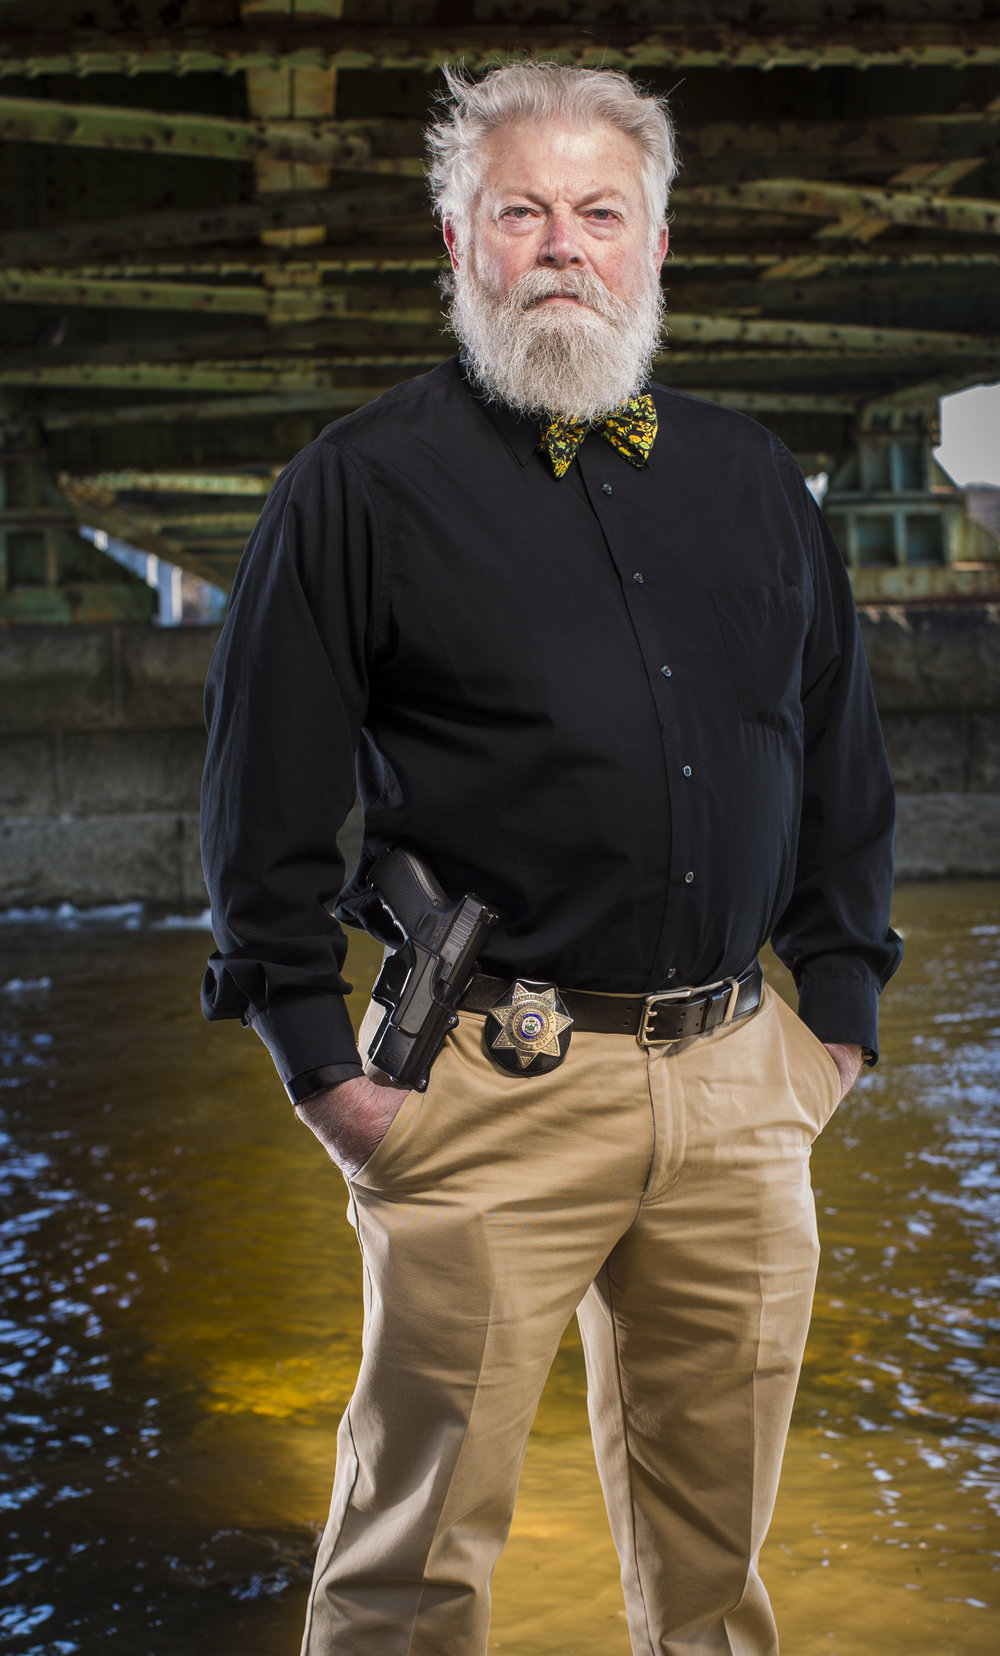 """Detective Steven Edmondson, 63, of Topsham, Maine. At a time when Maine is struggling to find young people who want to become police officers, Edmondson continues to work as a full time law enforcement officer, something he's done in Maine now for 42 years. Starting out at the Topsham Police Department, where he worked for 26 years, and has spent the last 16 years of his career serving as the Domestic Violence Investigator for the Sagadahoc County District Attorney's Office. """"I have remained in law enforcement for so long because I truly believe it has been a calling for me,"""" he said. """"Although the subject matter of my current position is highly objectionable, I do take pleasure in assisting victims of abuse and seeing offenders held accountable."""" Edmondson has been in Maine since he was 8, and has ancestral roots that go back 300 years in the Midcoast area of Maine."""